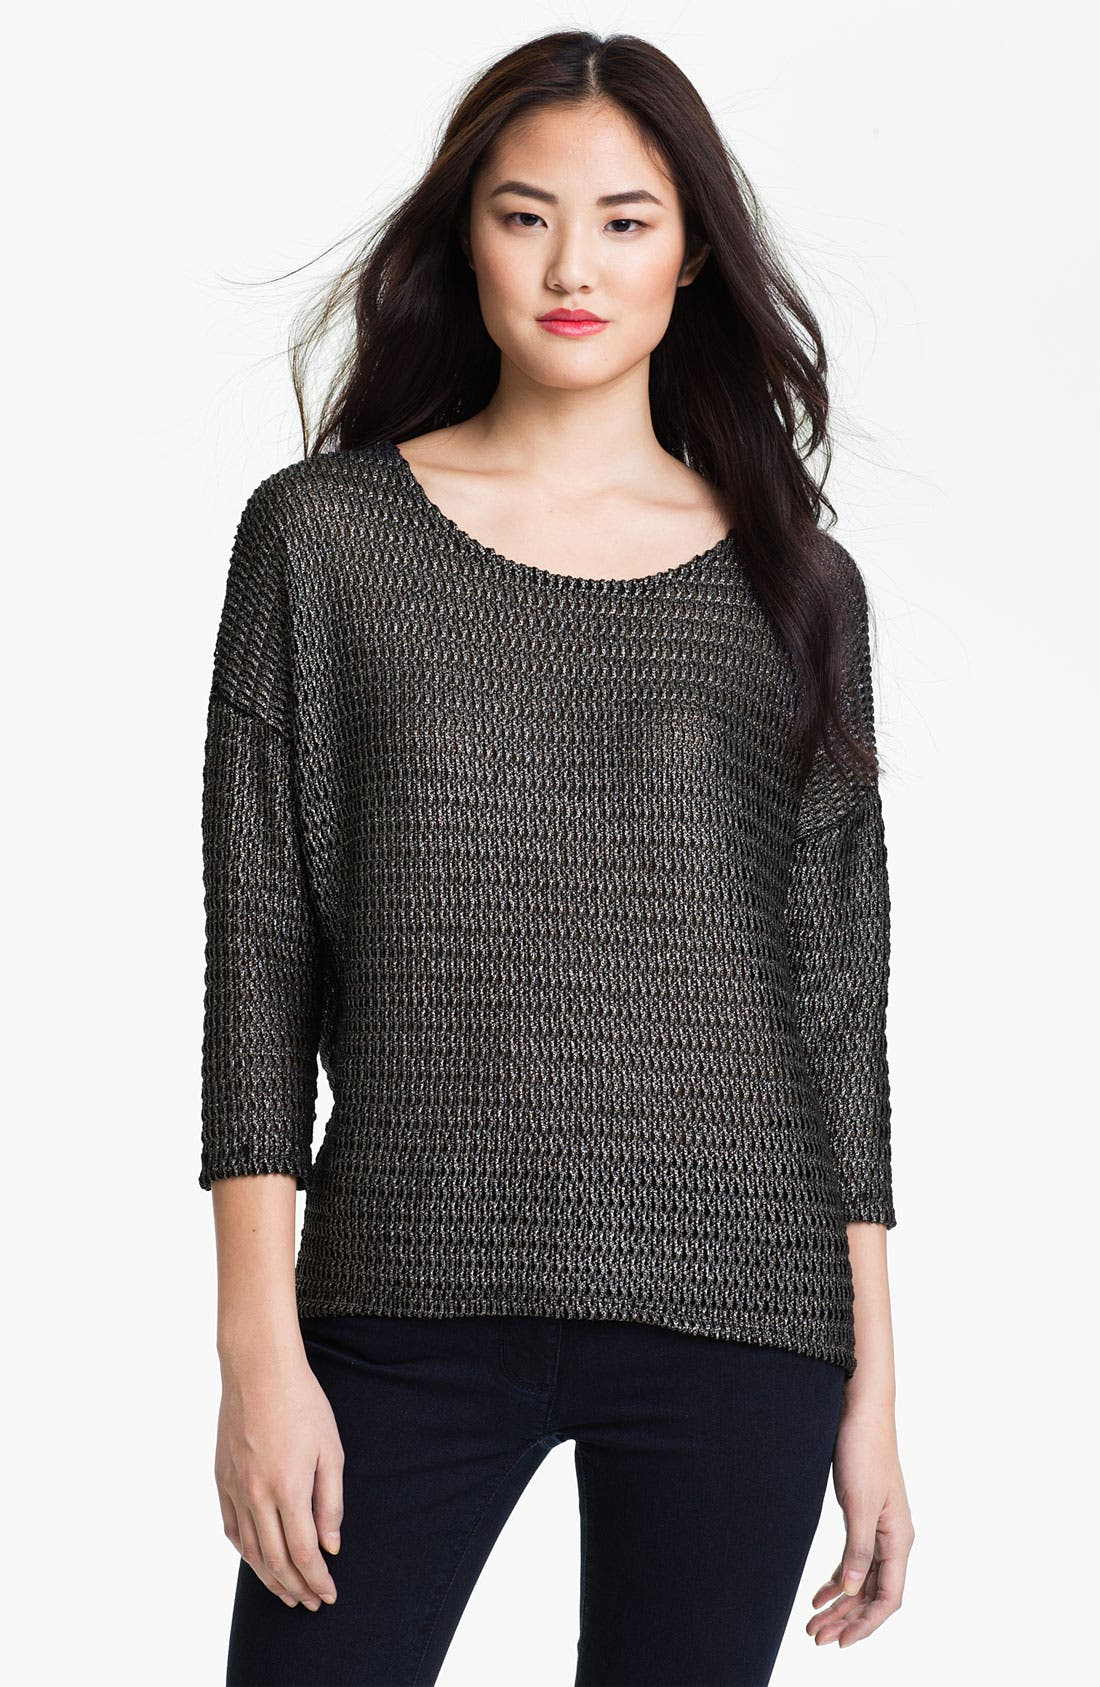 Alternate Image 1 Selected - Two by Vince Camuto Metallic Knit Sweater